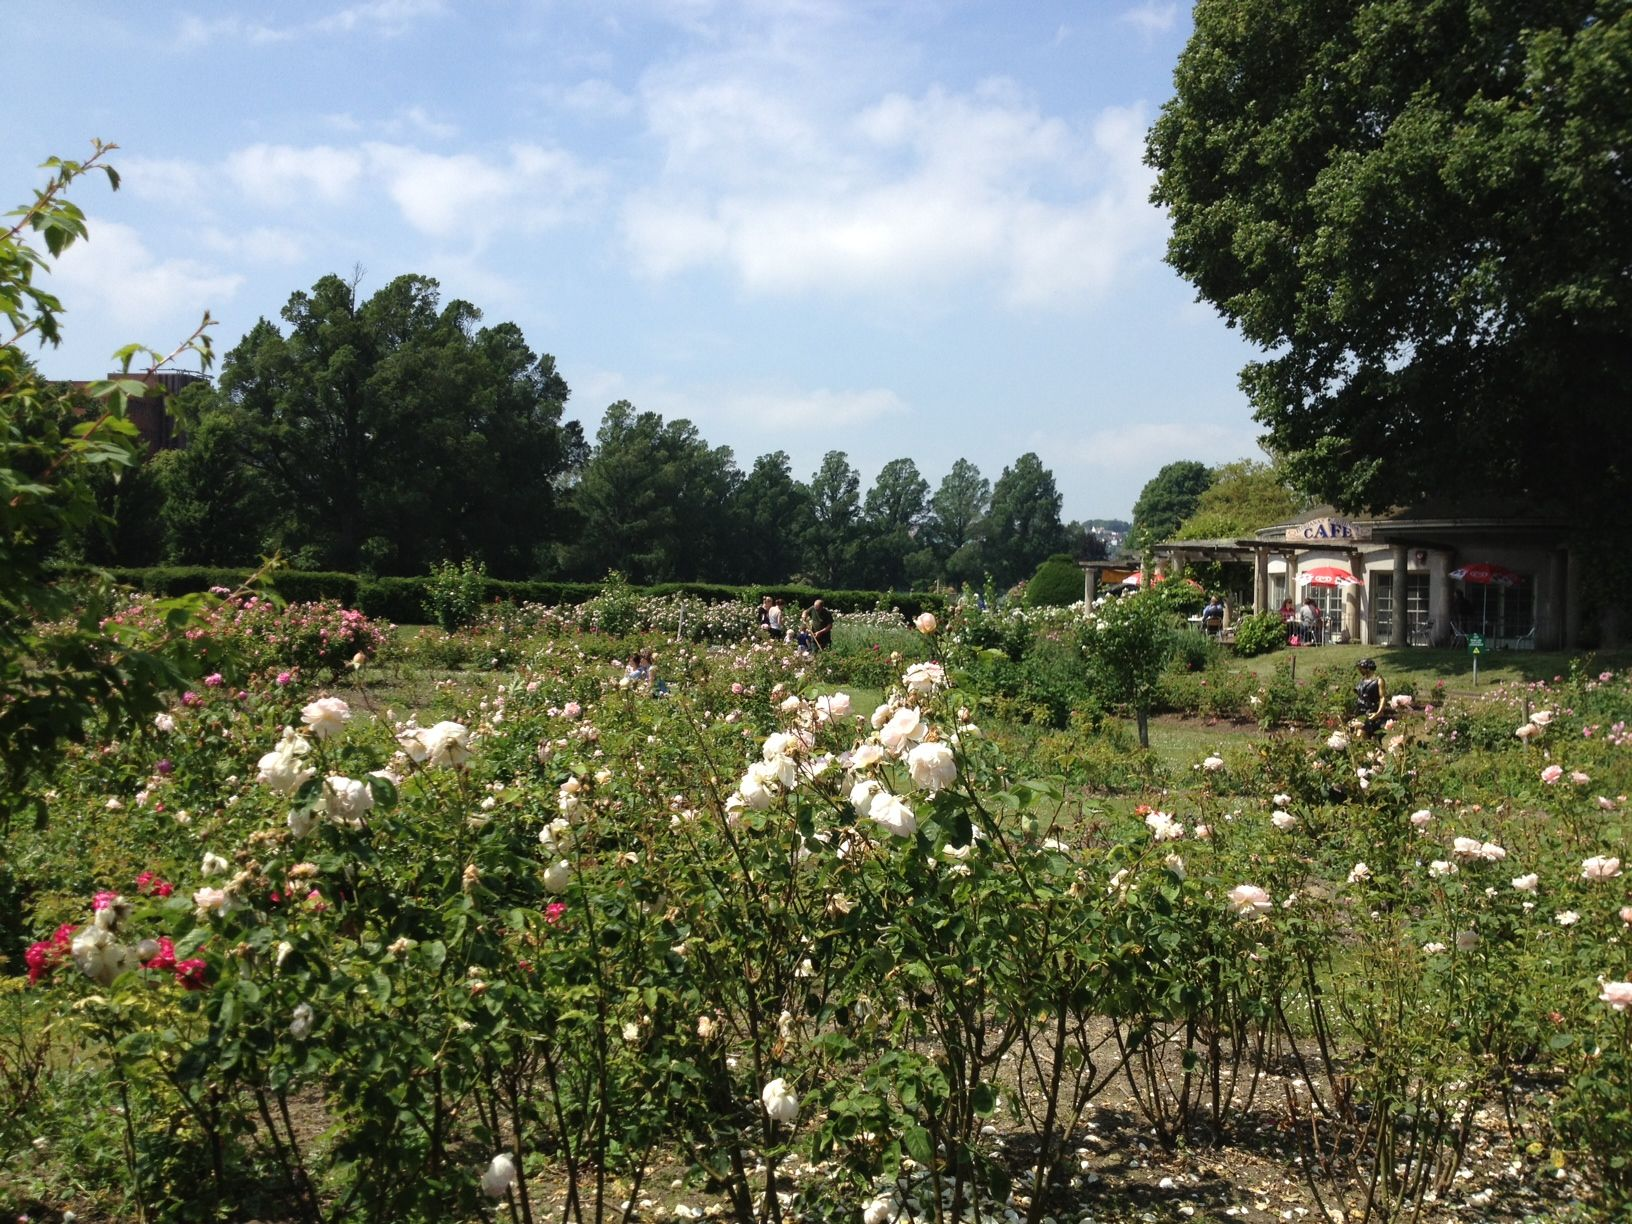 Right now the rose garden at Preston Park smells